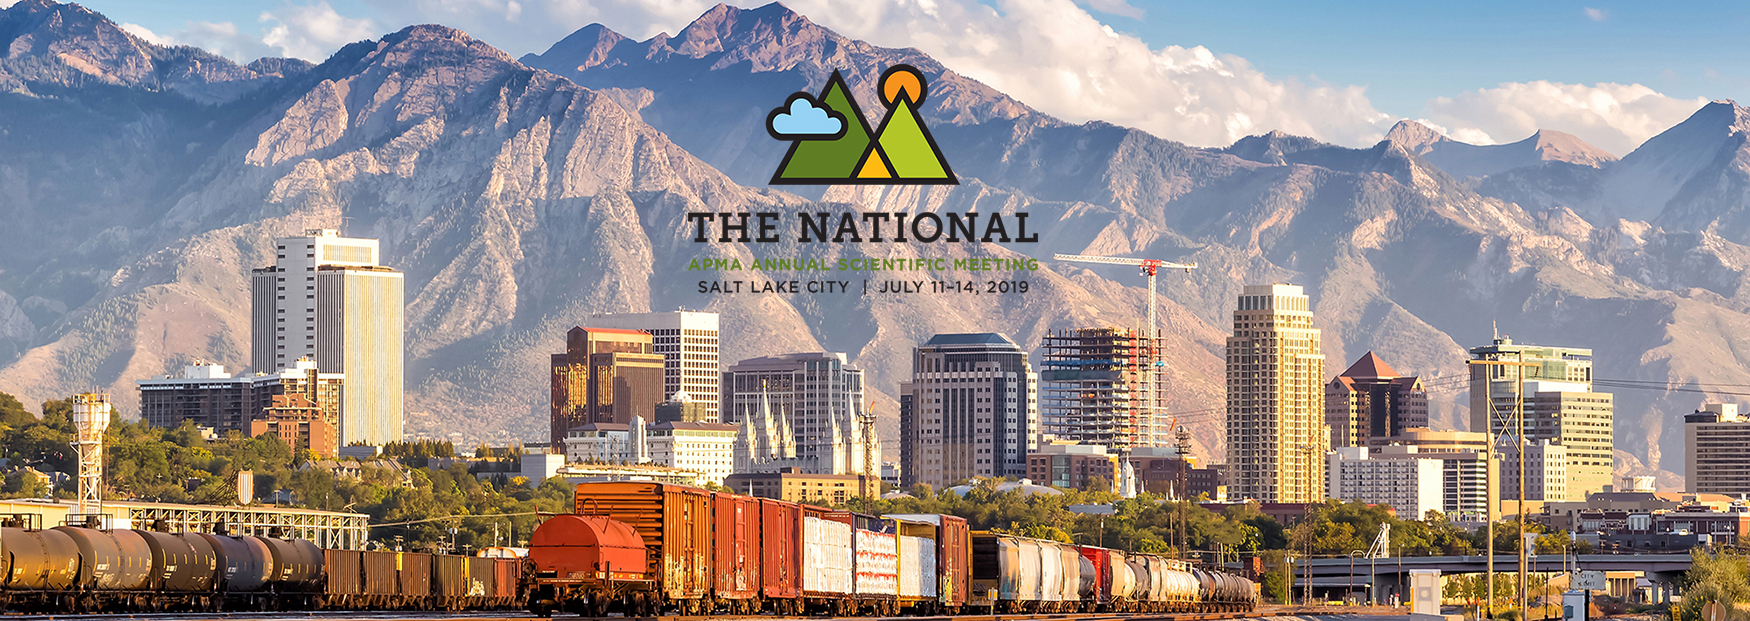 The National | Events | APMA